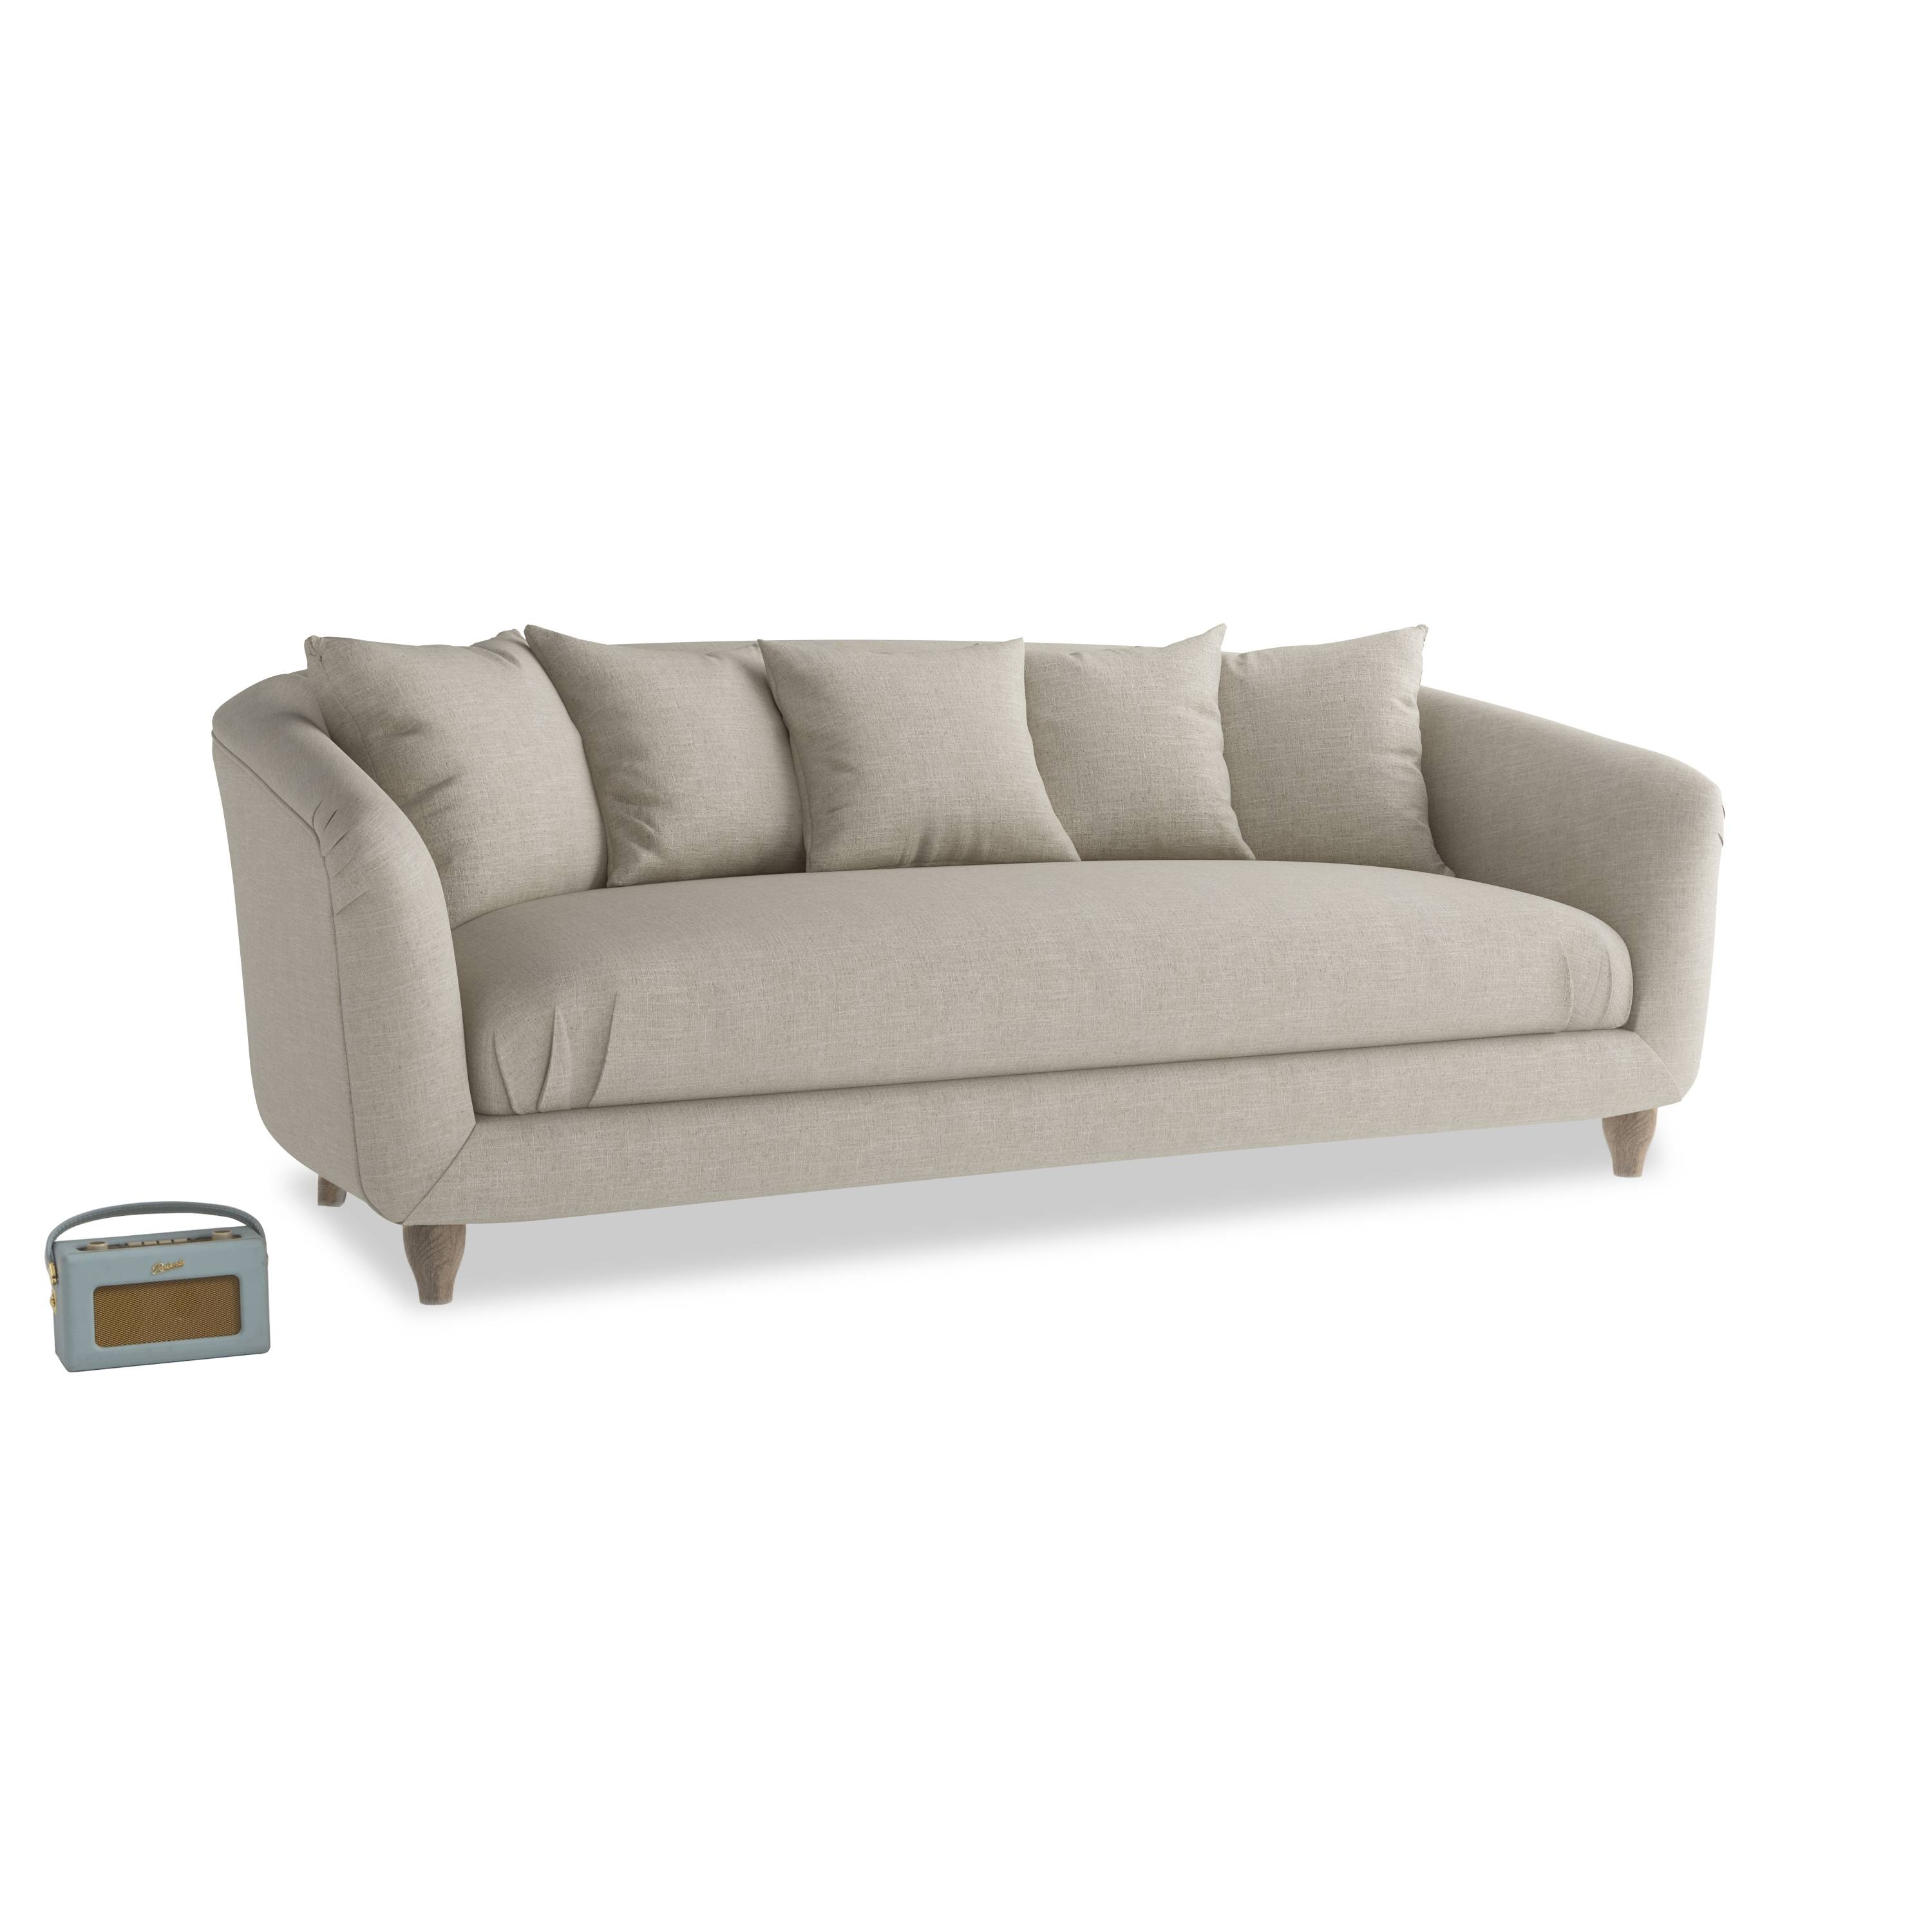 Comfy Sofas | 2 Seater, 3 Seater, Corner & Chaise Sofas | Loaf intended for 2X2 Corner Sofas (Image 4 of 30)